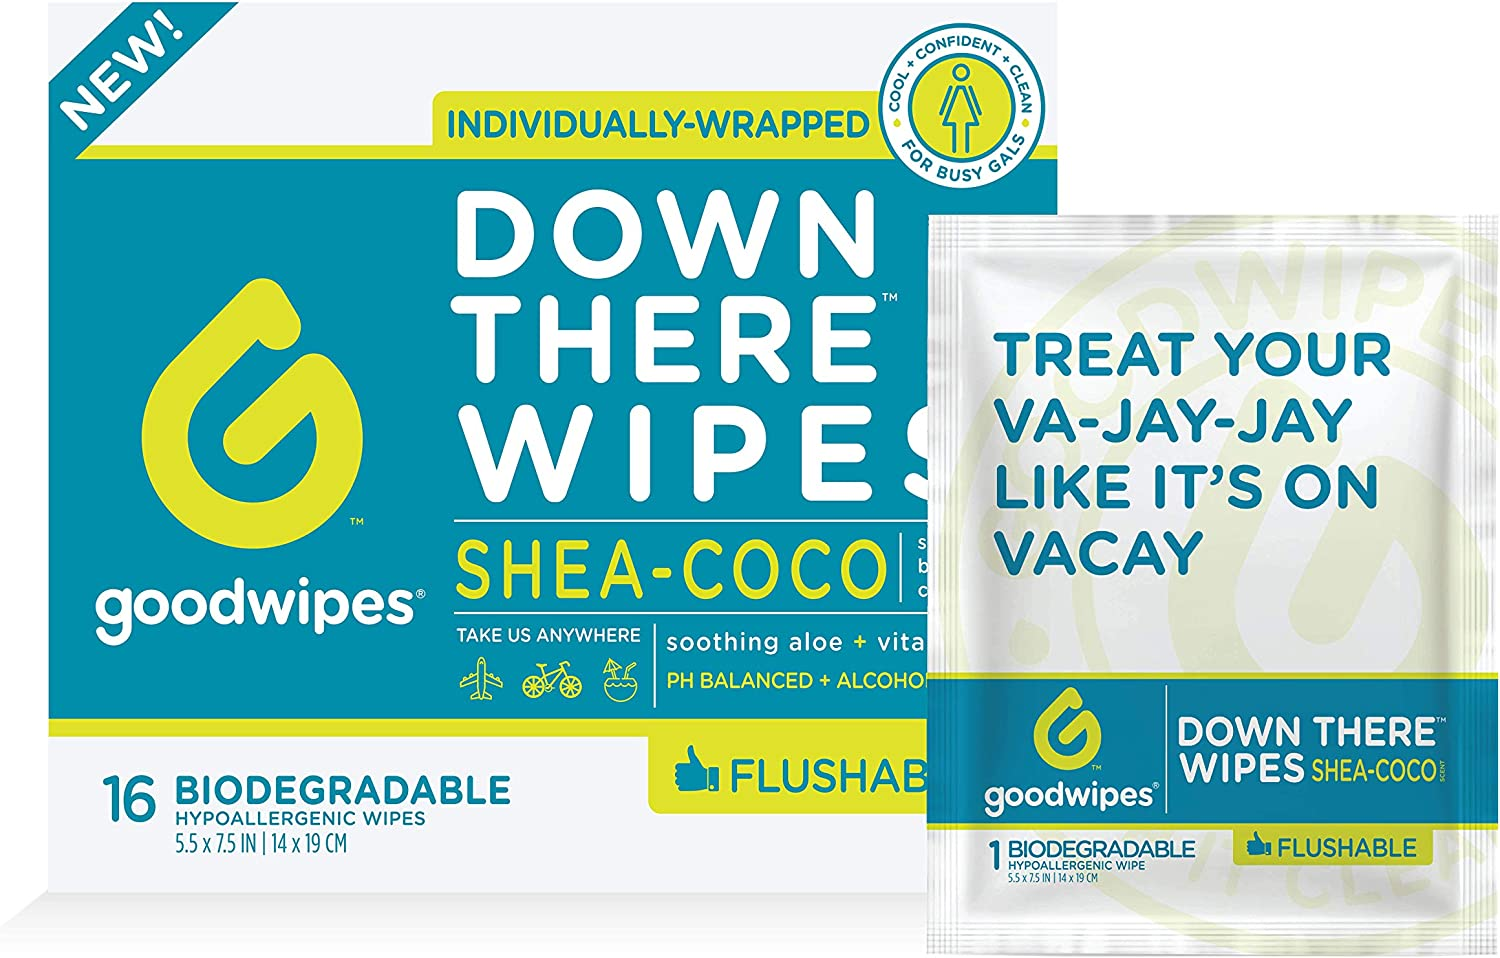 Goodwipes Down There Feminine Flushable Wet Wipes for Women, Shea-Coco Scent, 16 Individually Wrapped Wipes, 4 Count (64 Wipes)